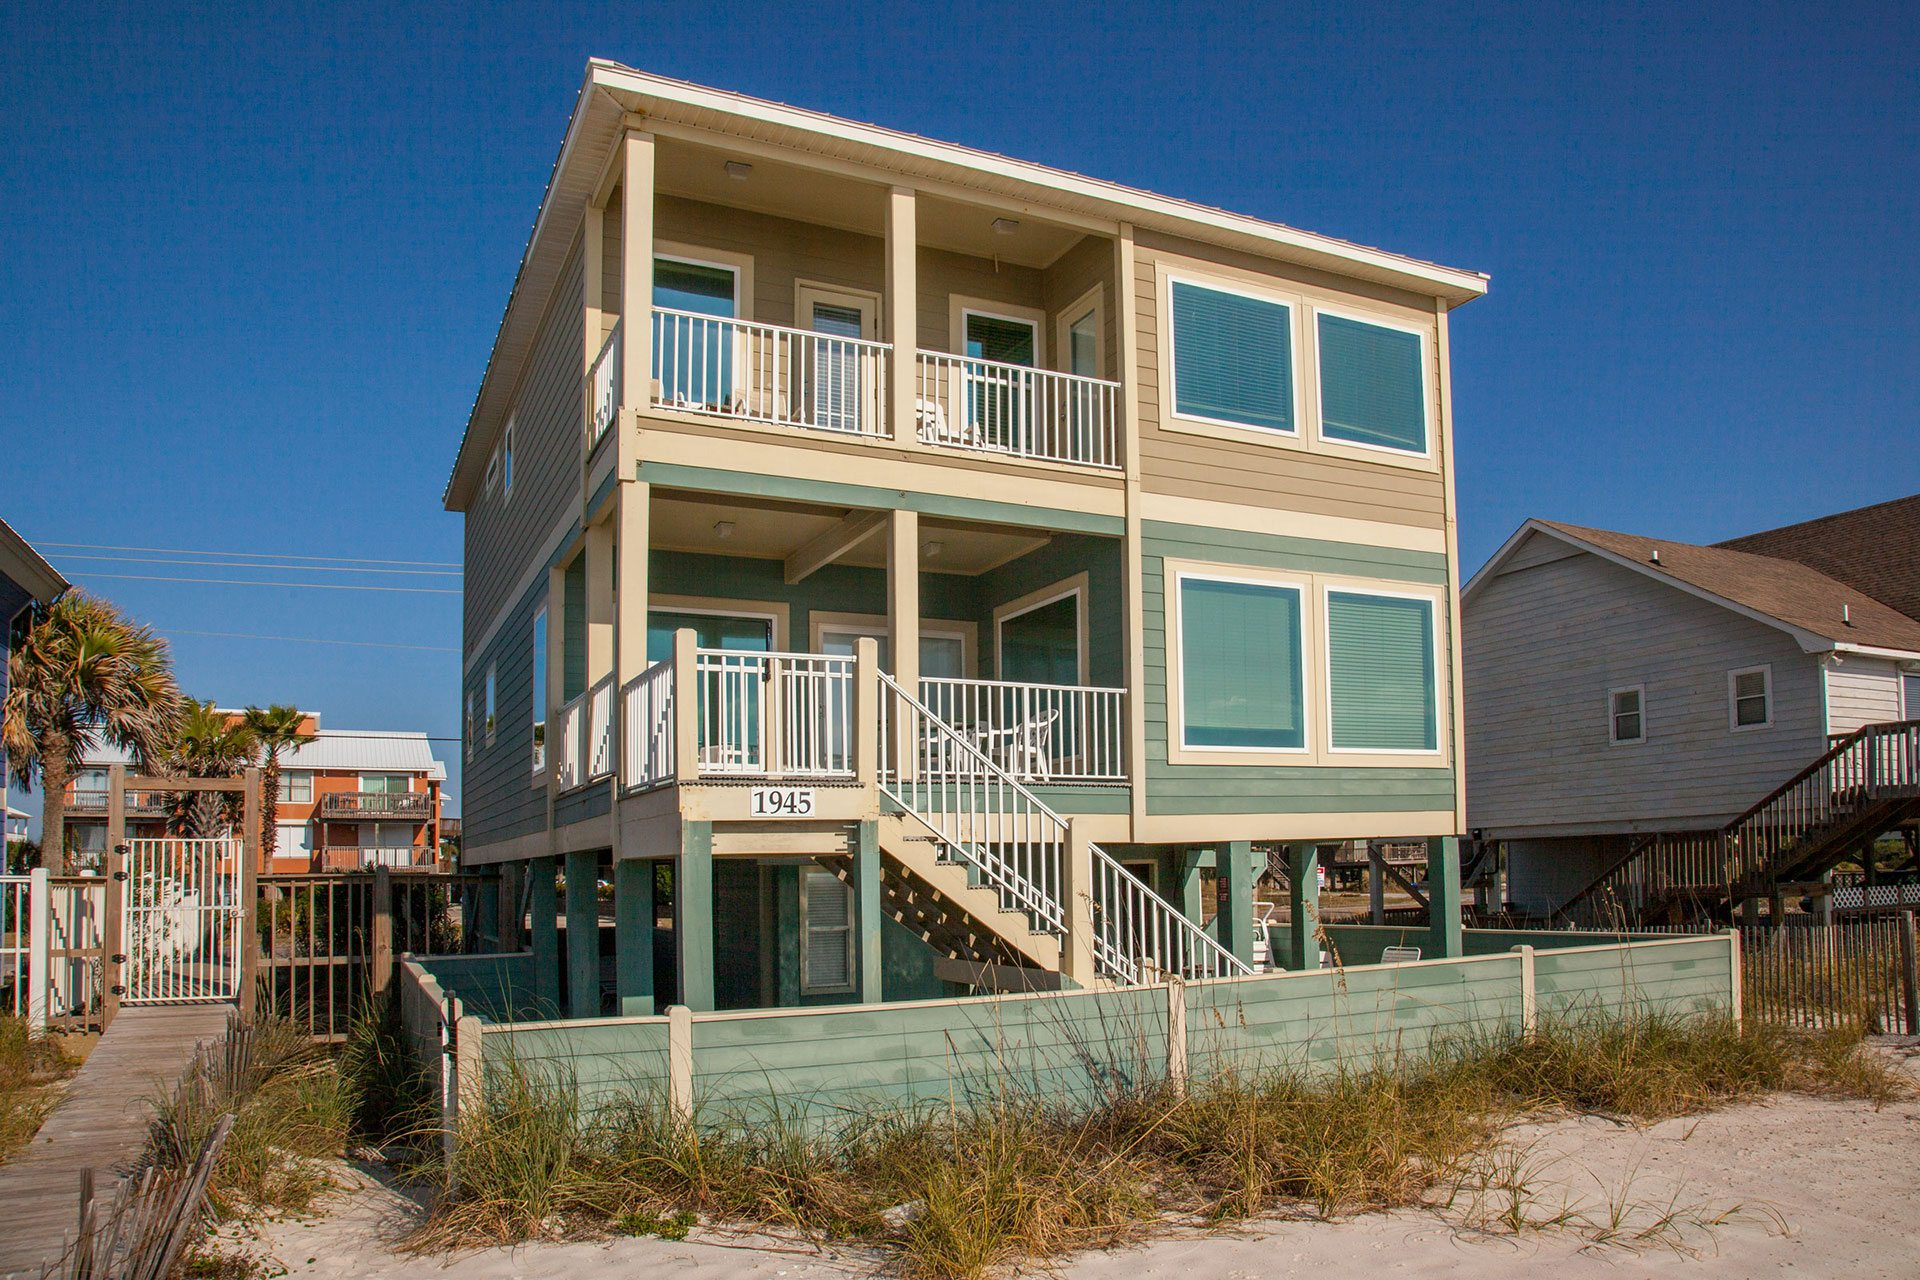 Vacation Home Rentals >> Our Gulf Shores Vacation Home Rentals On Gulf Shores